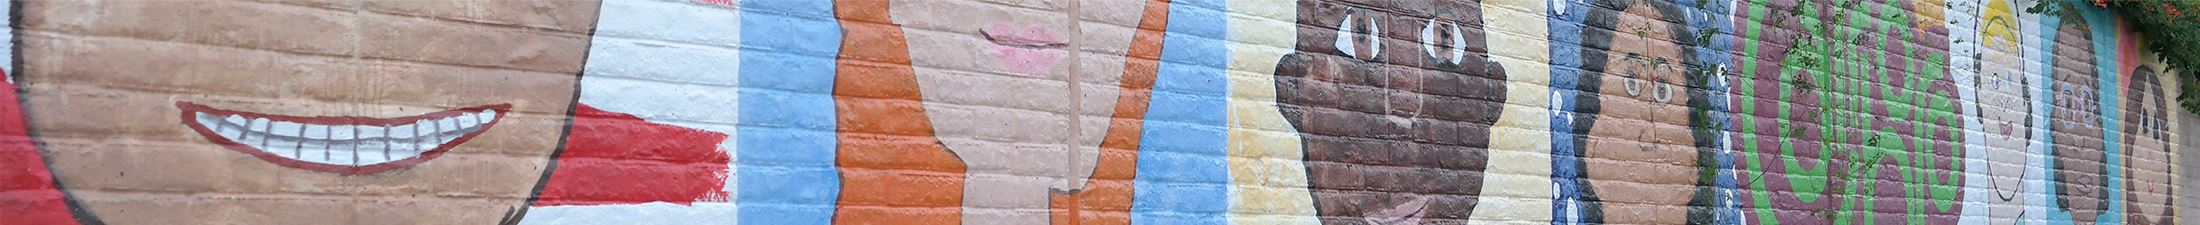 Caricature portraits painted on brick wall